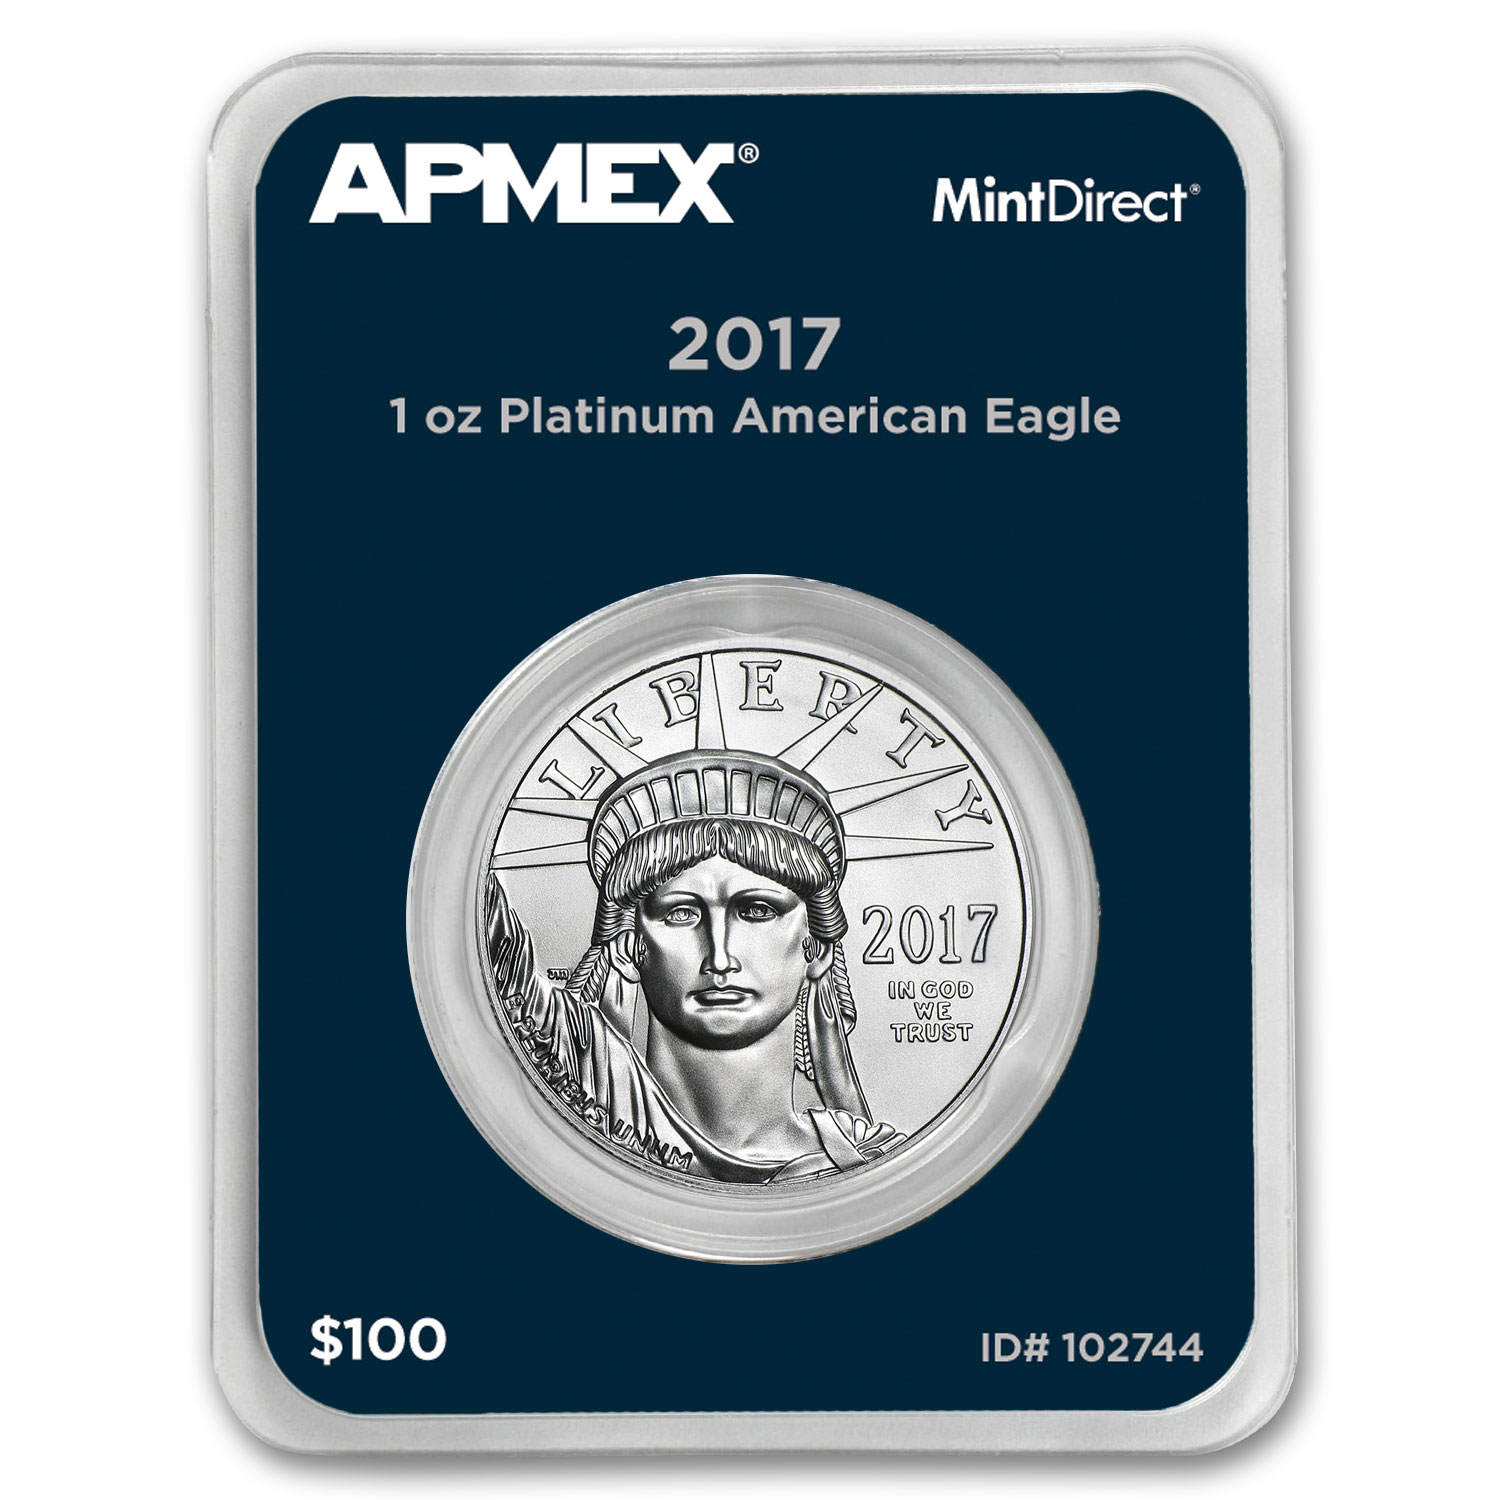 2017 1 oz Platinum American Eagle (MintDirect® Single)